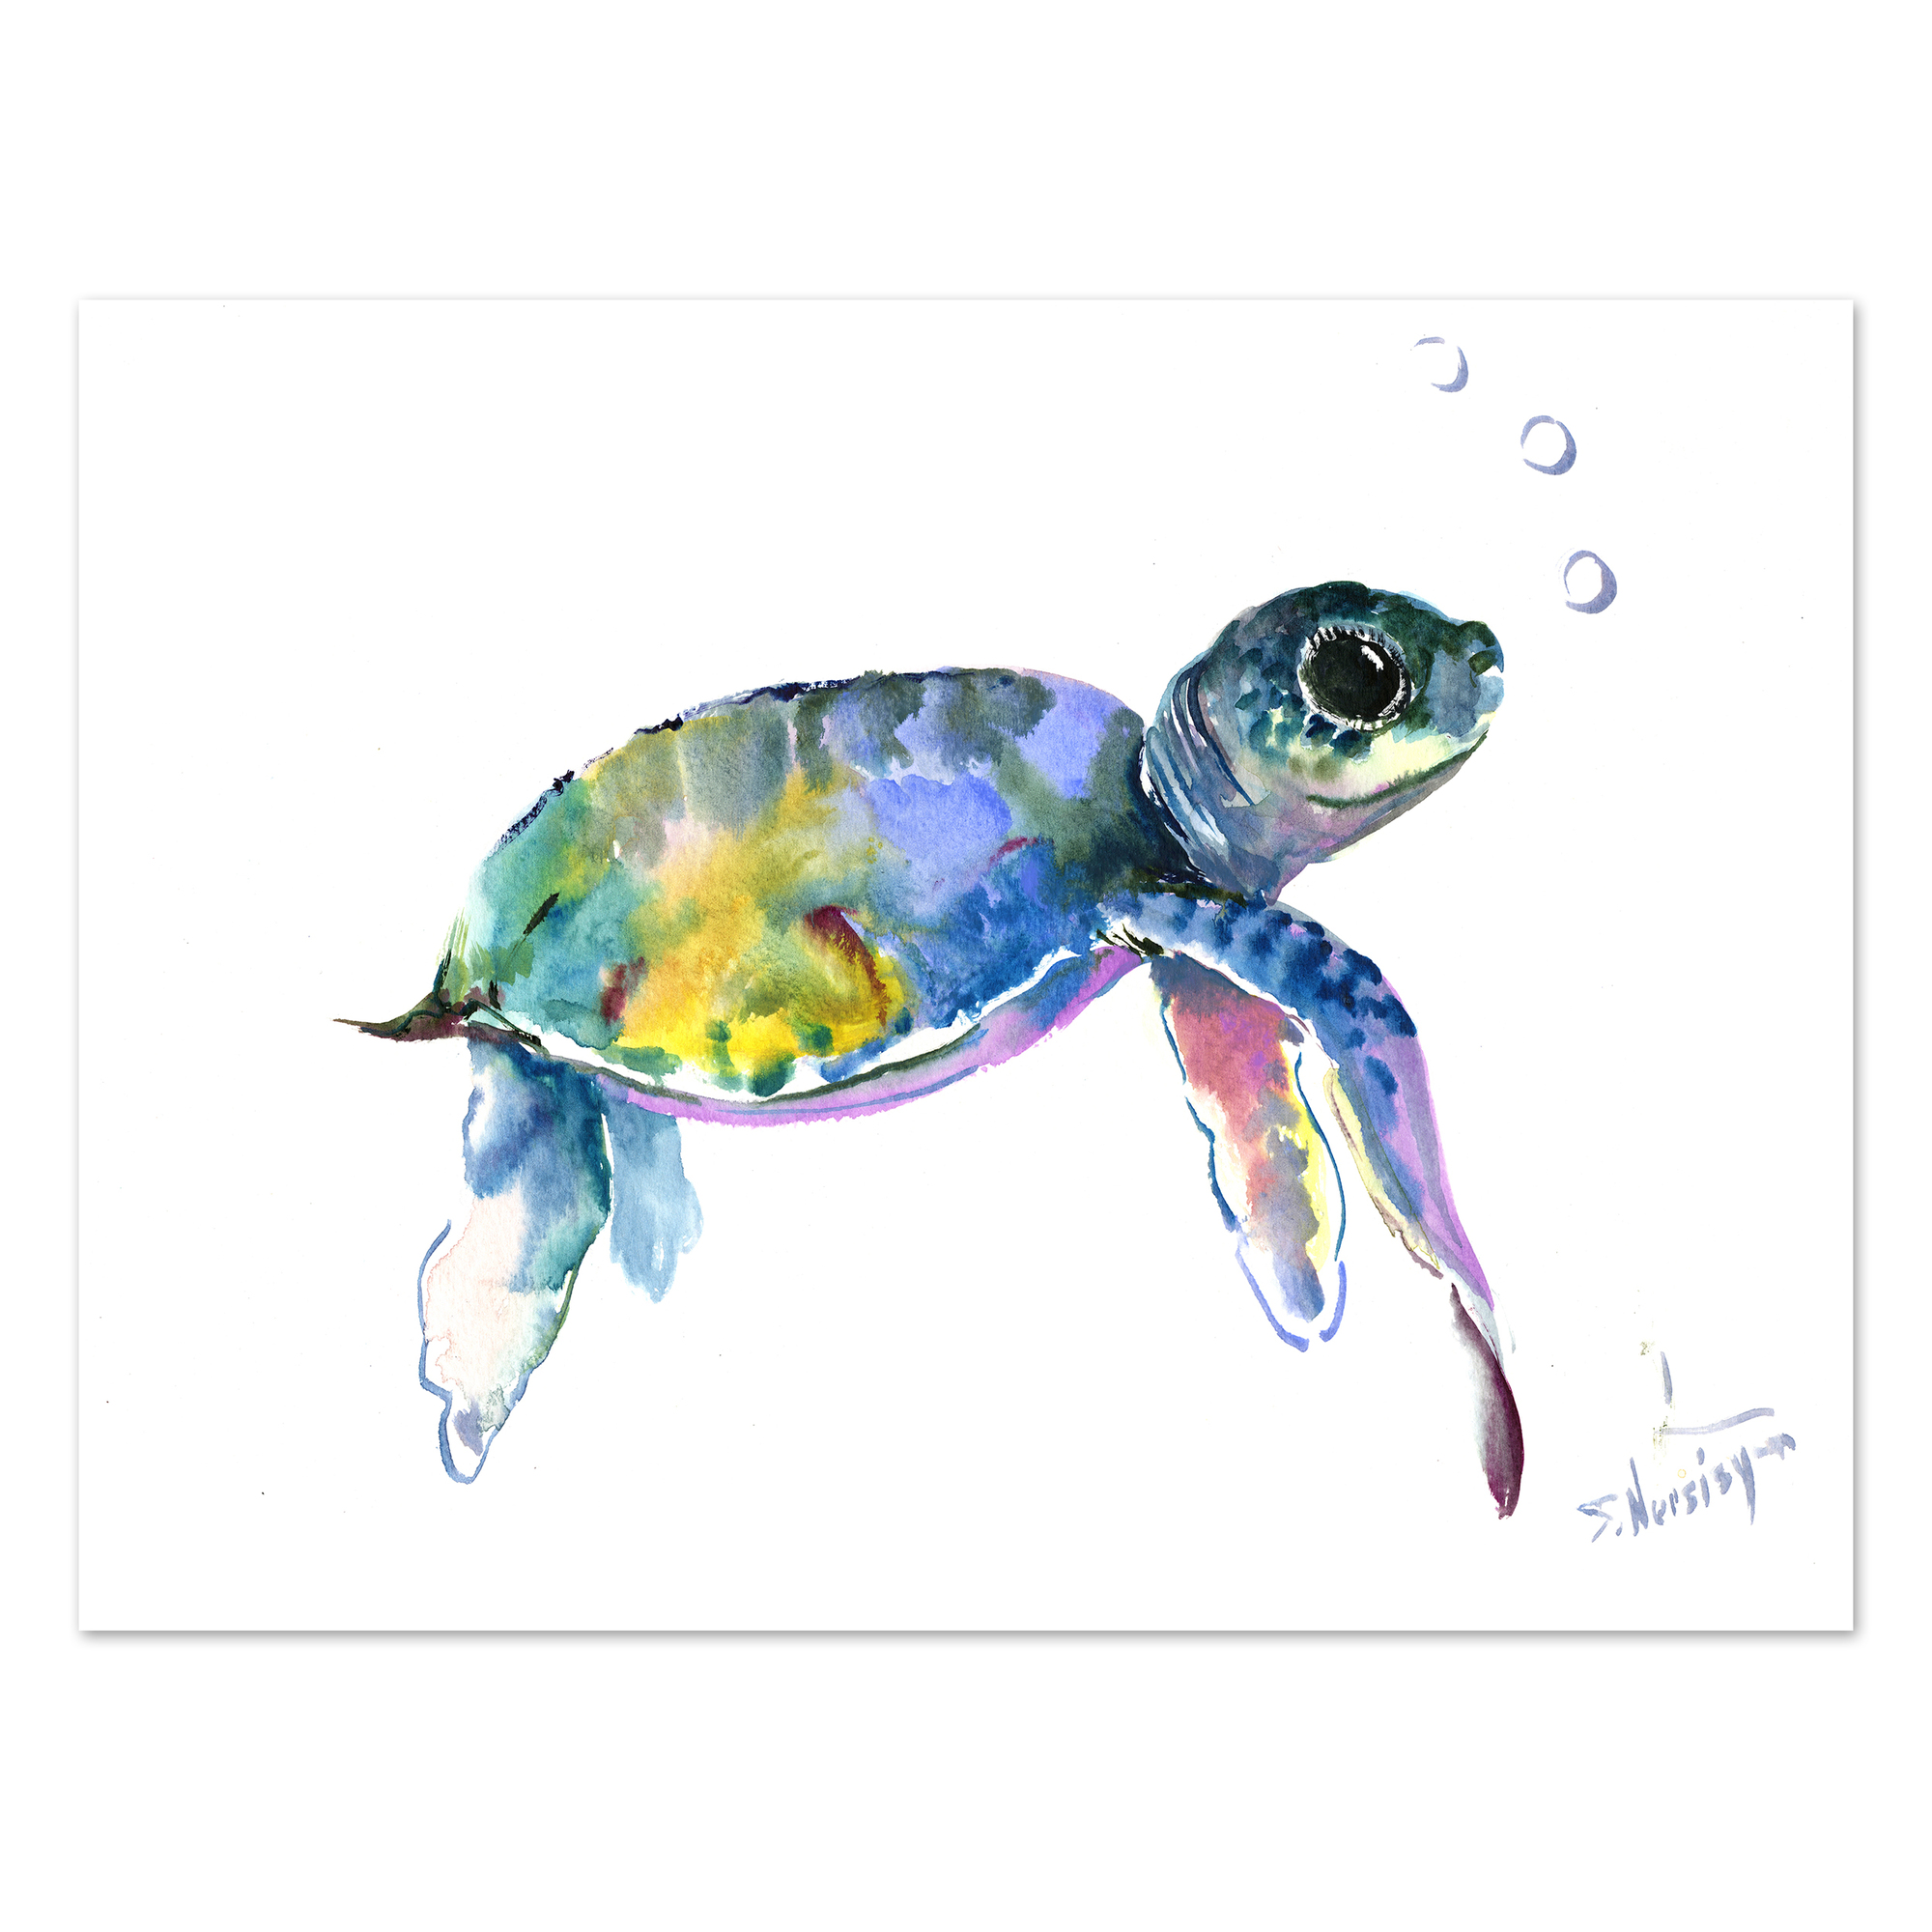 Sku ameb1211 baby sea turtles 2 printed wall art is also sometimes listed under the following manufacturer numbers a108p1043f4260 a108p1043p2130